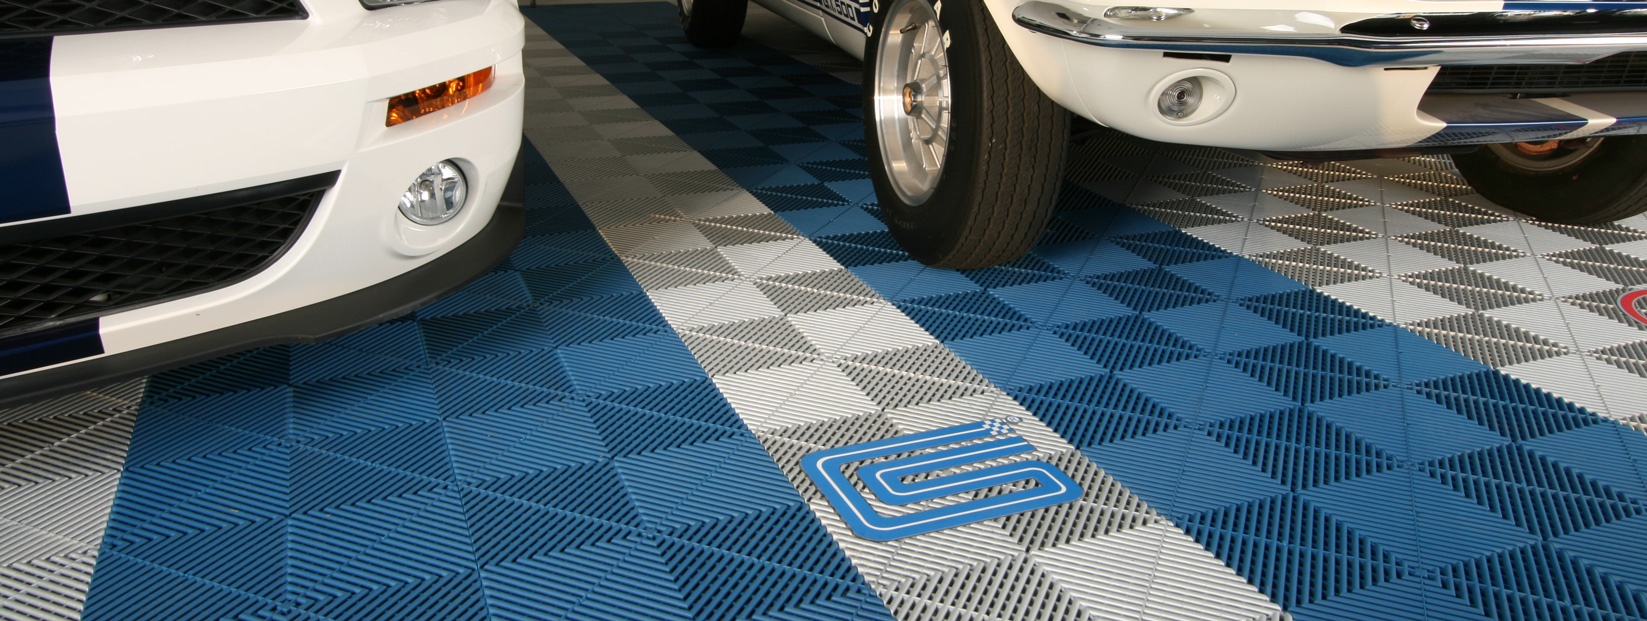 Cambridge Garage Flooring